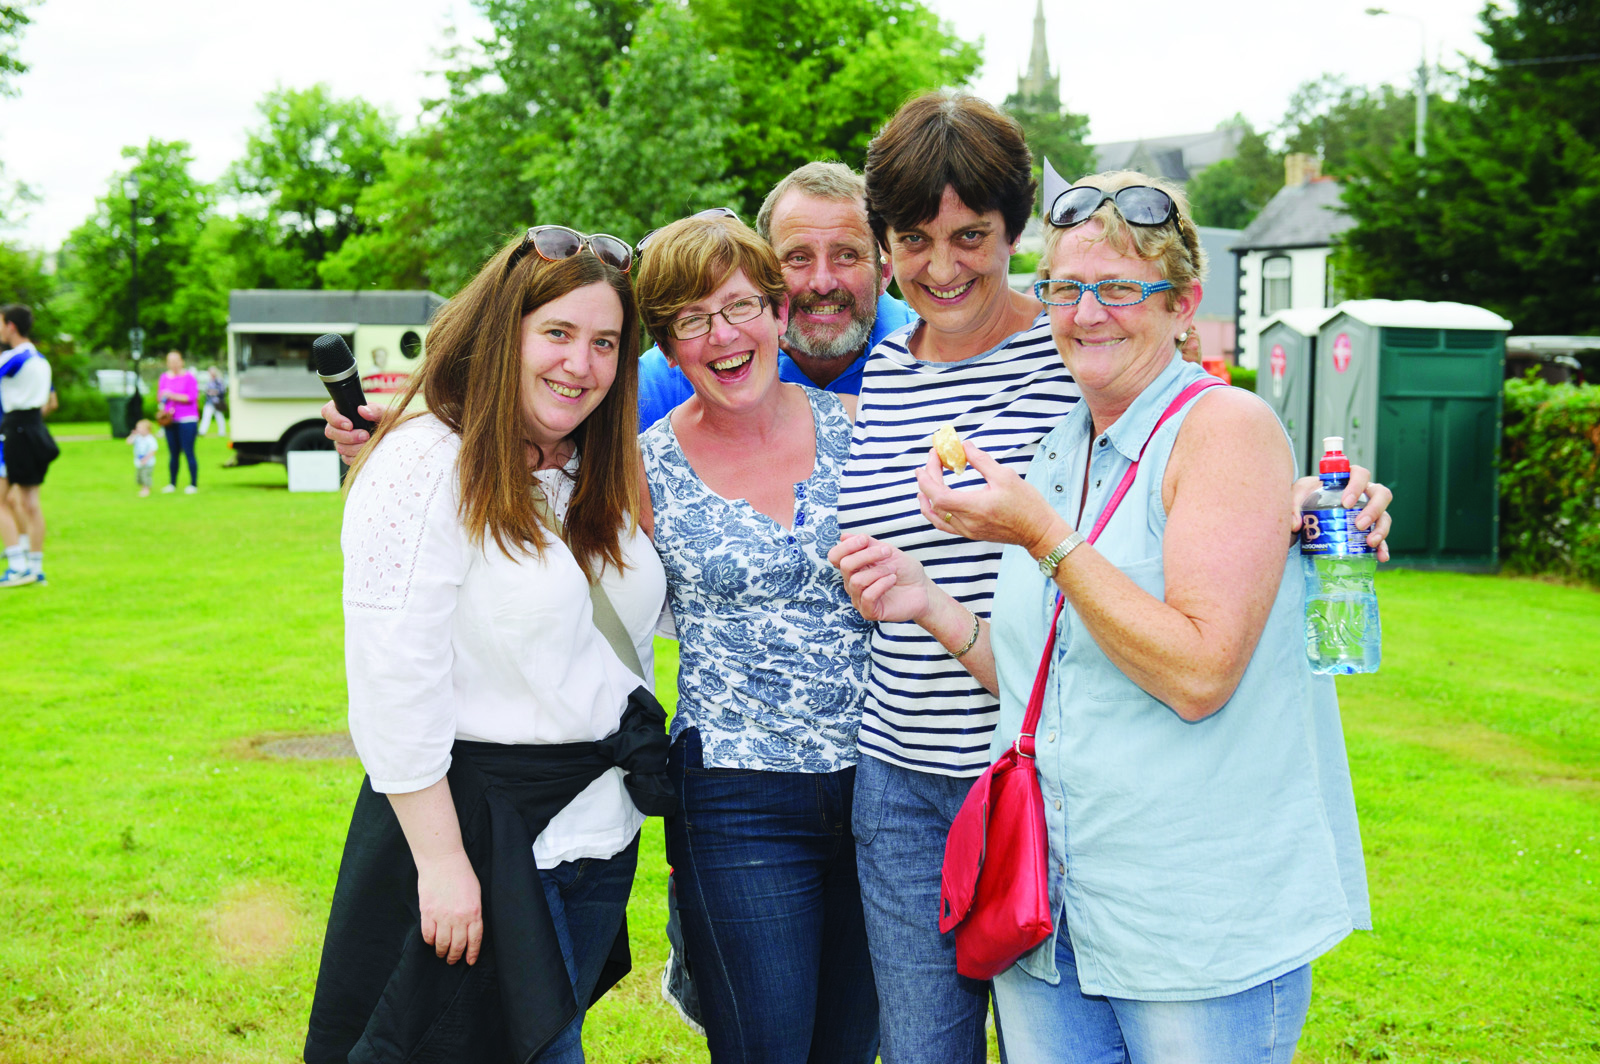 At the Clones Canal Festival were (L-R) Tayna Mullen, Joanne Rehill, Pat McCabe, Lorainne O'Connor and Michelle Morgan. ©Rory Geary/The Northern Standard